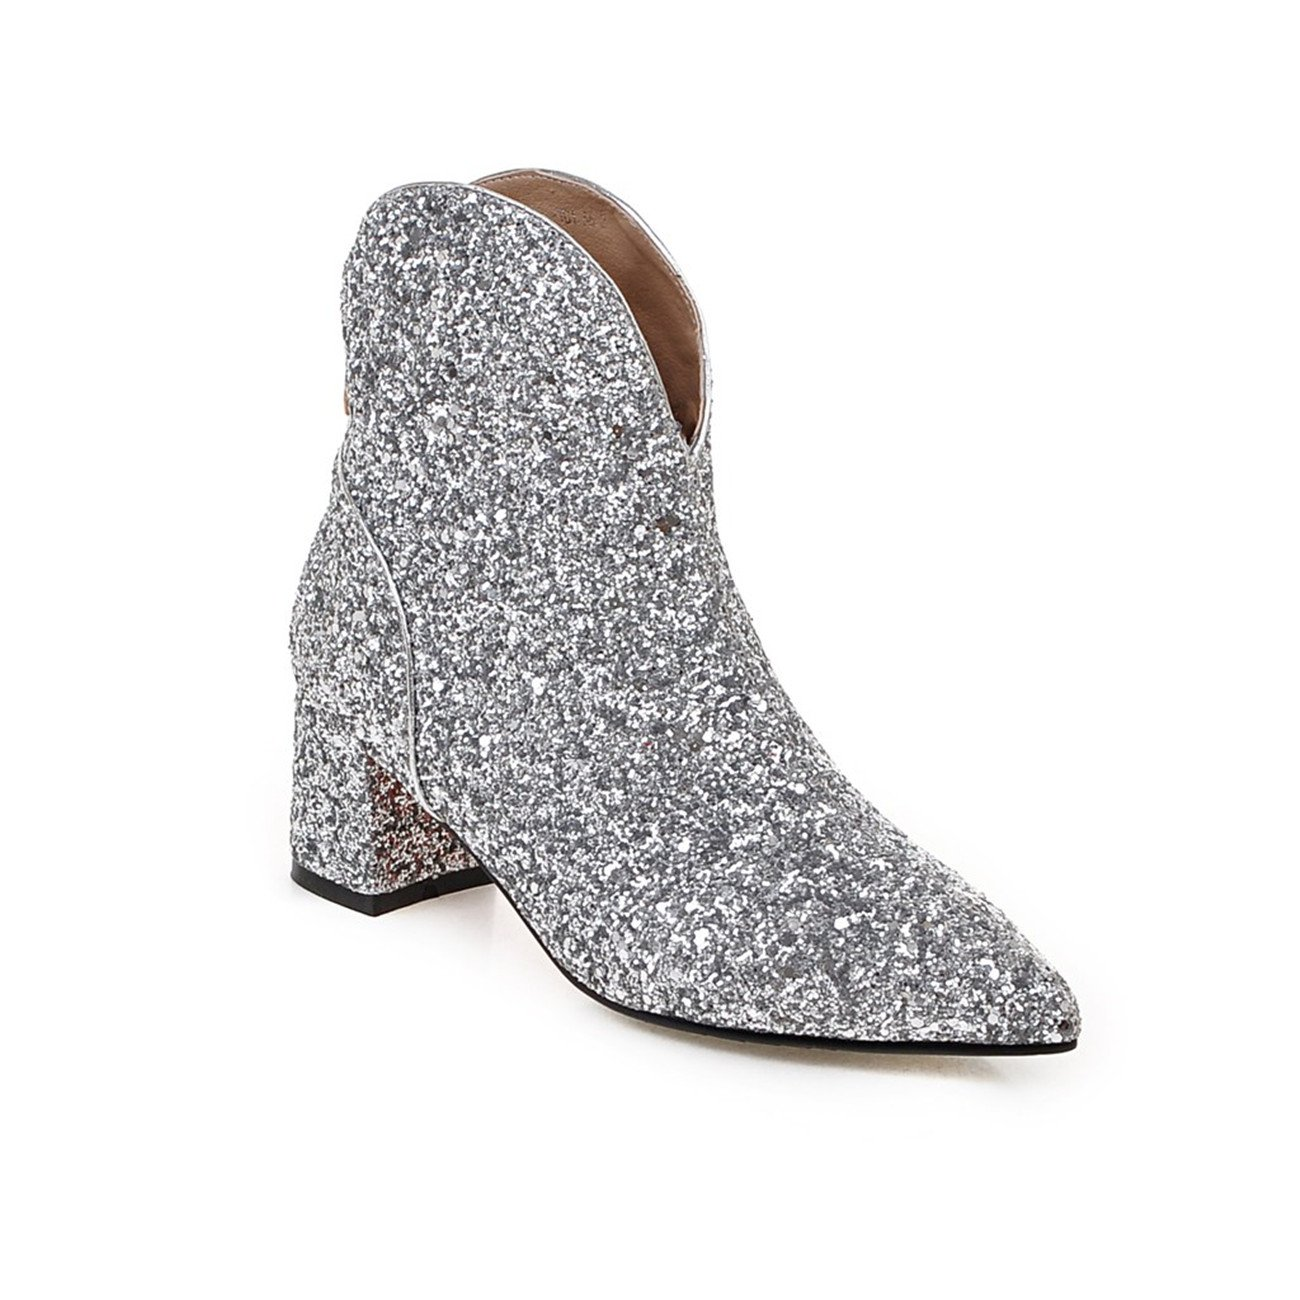 YL, B079YBJG24 19919 Bottes Silber pour Femme Silber 51cf333 - latesttechnology.space